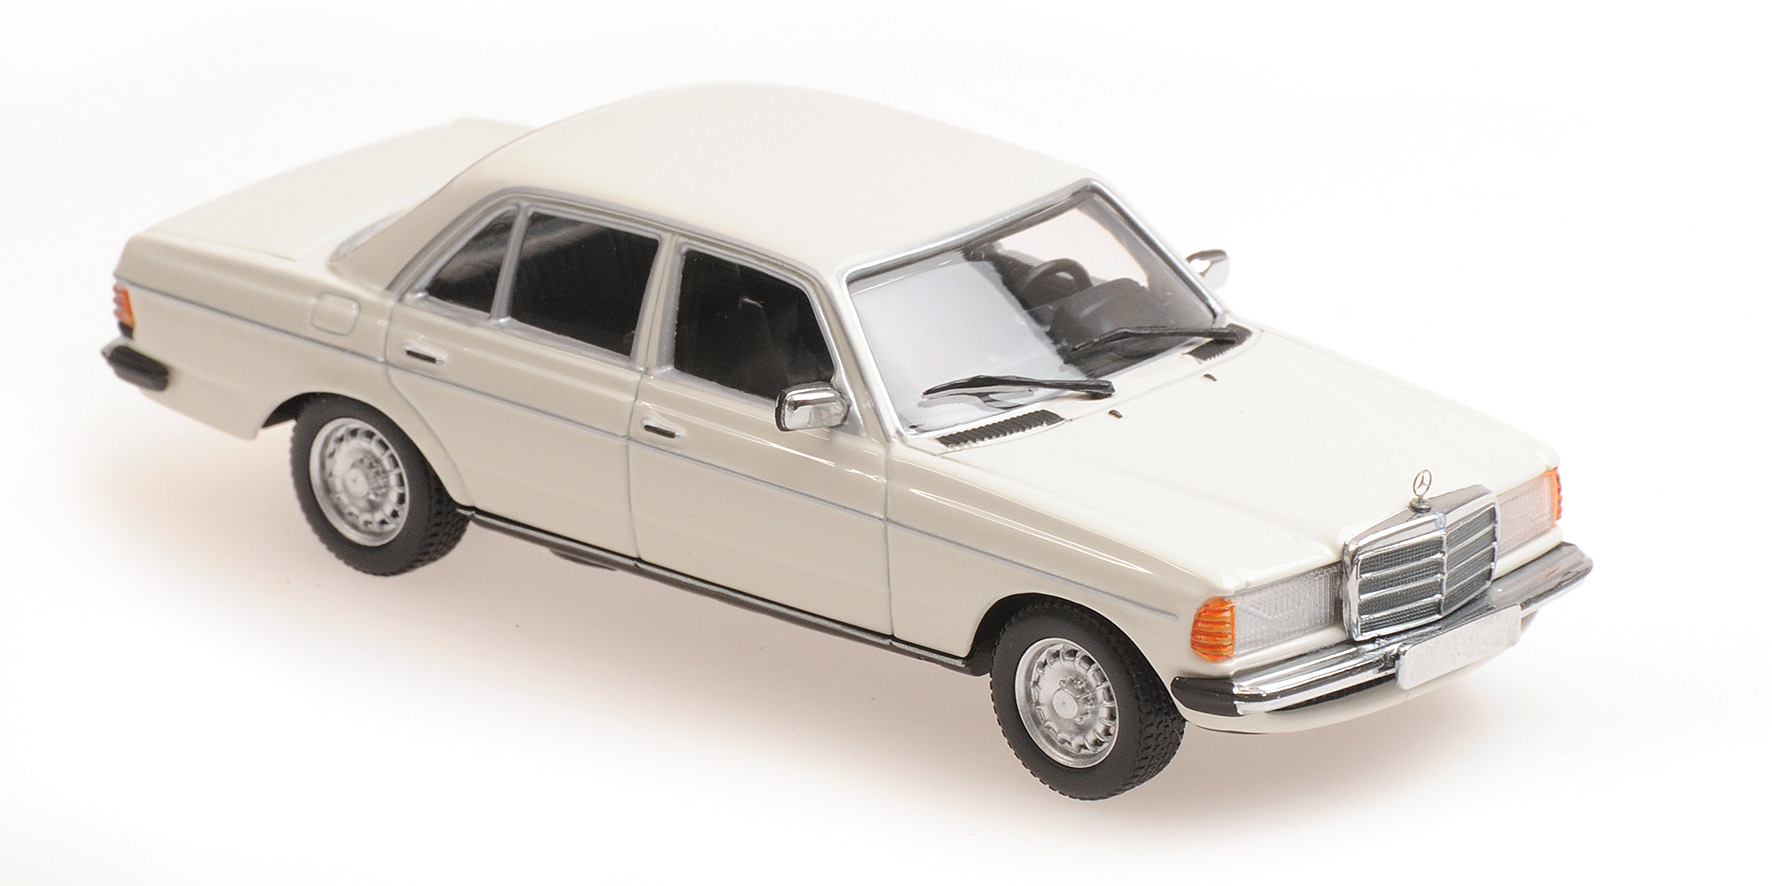 Mercedes-Benz 230E (W123) 1982 White